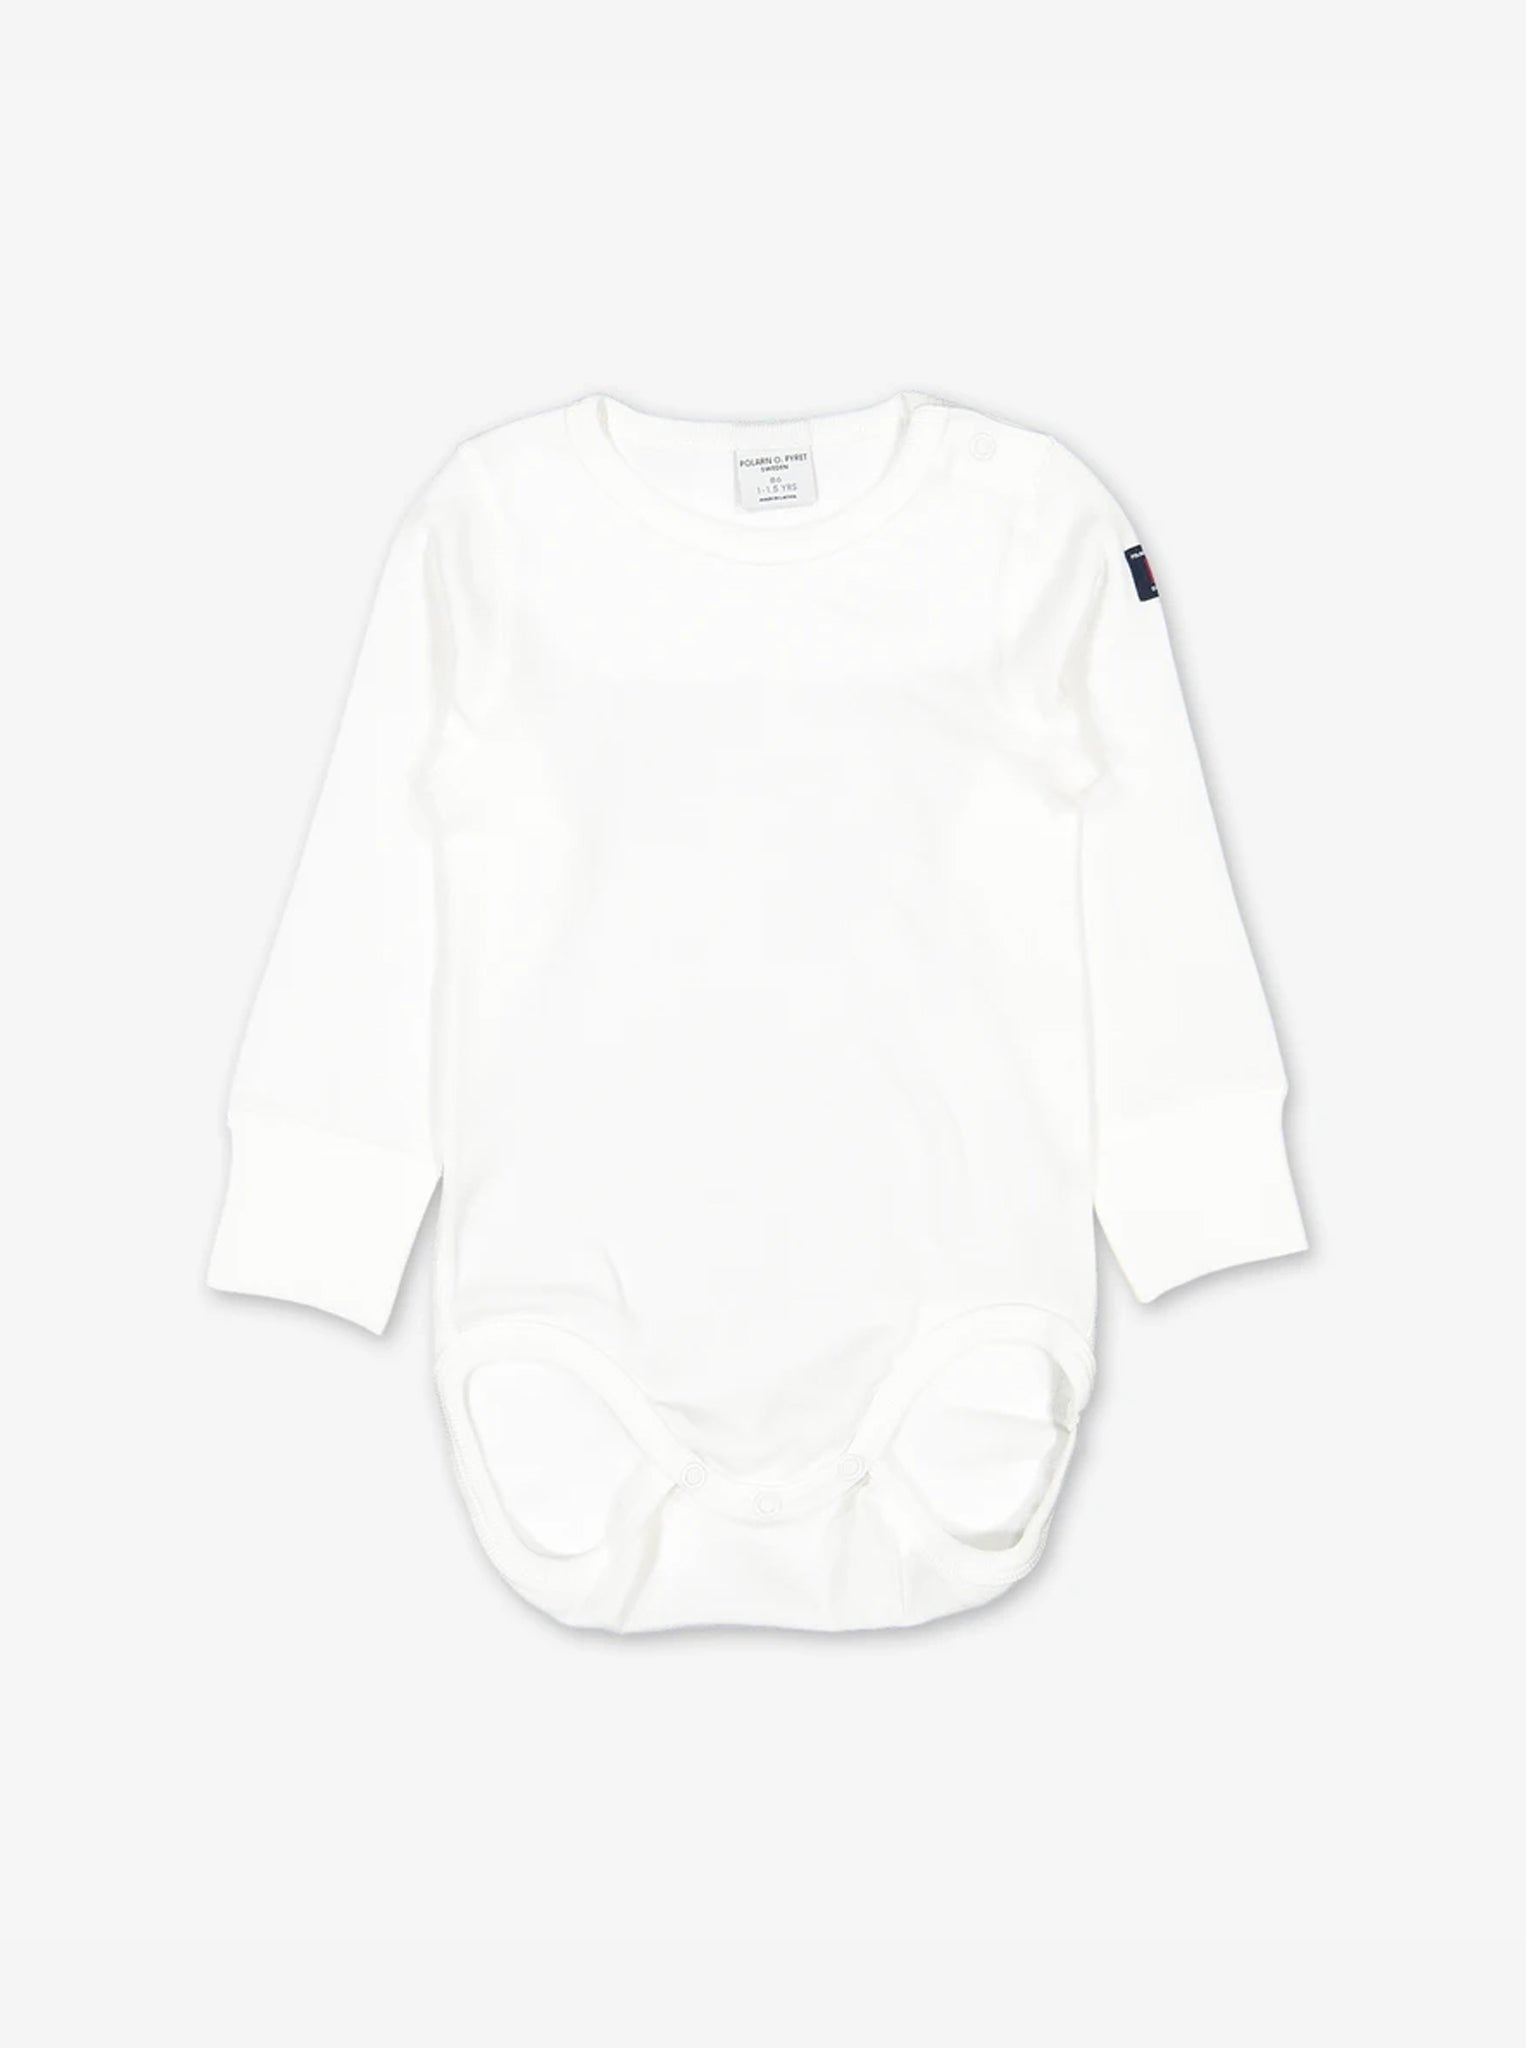 A classic white organic cotton bodysuit with long sleeves, snug leg openings and made from a super soft organic cotton fabric.